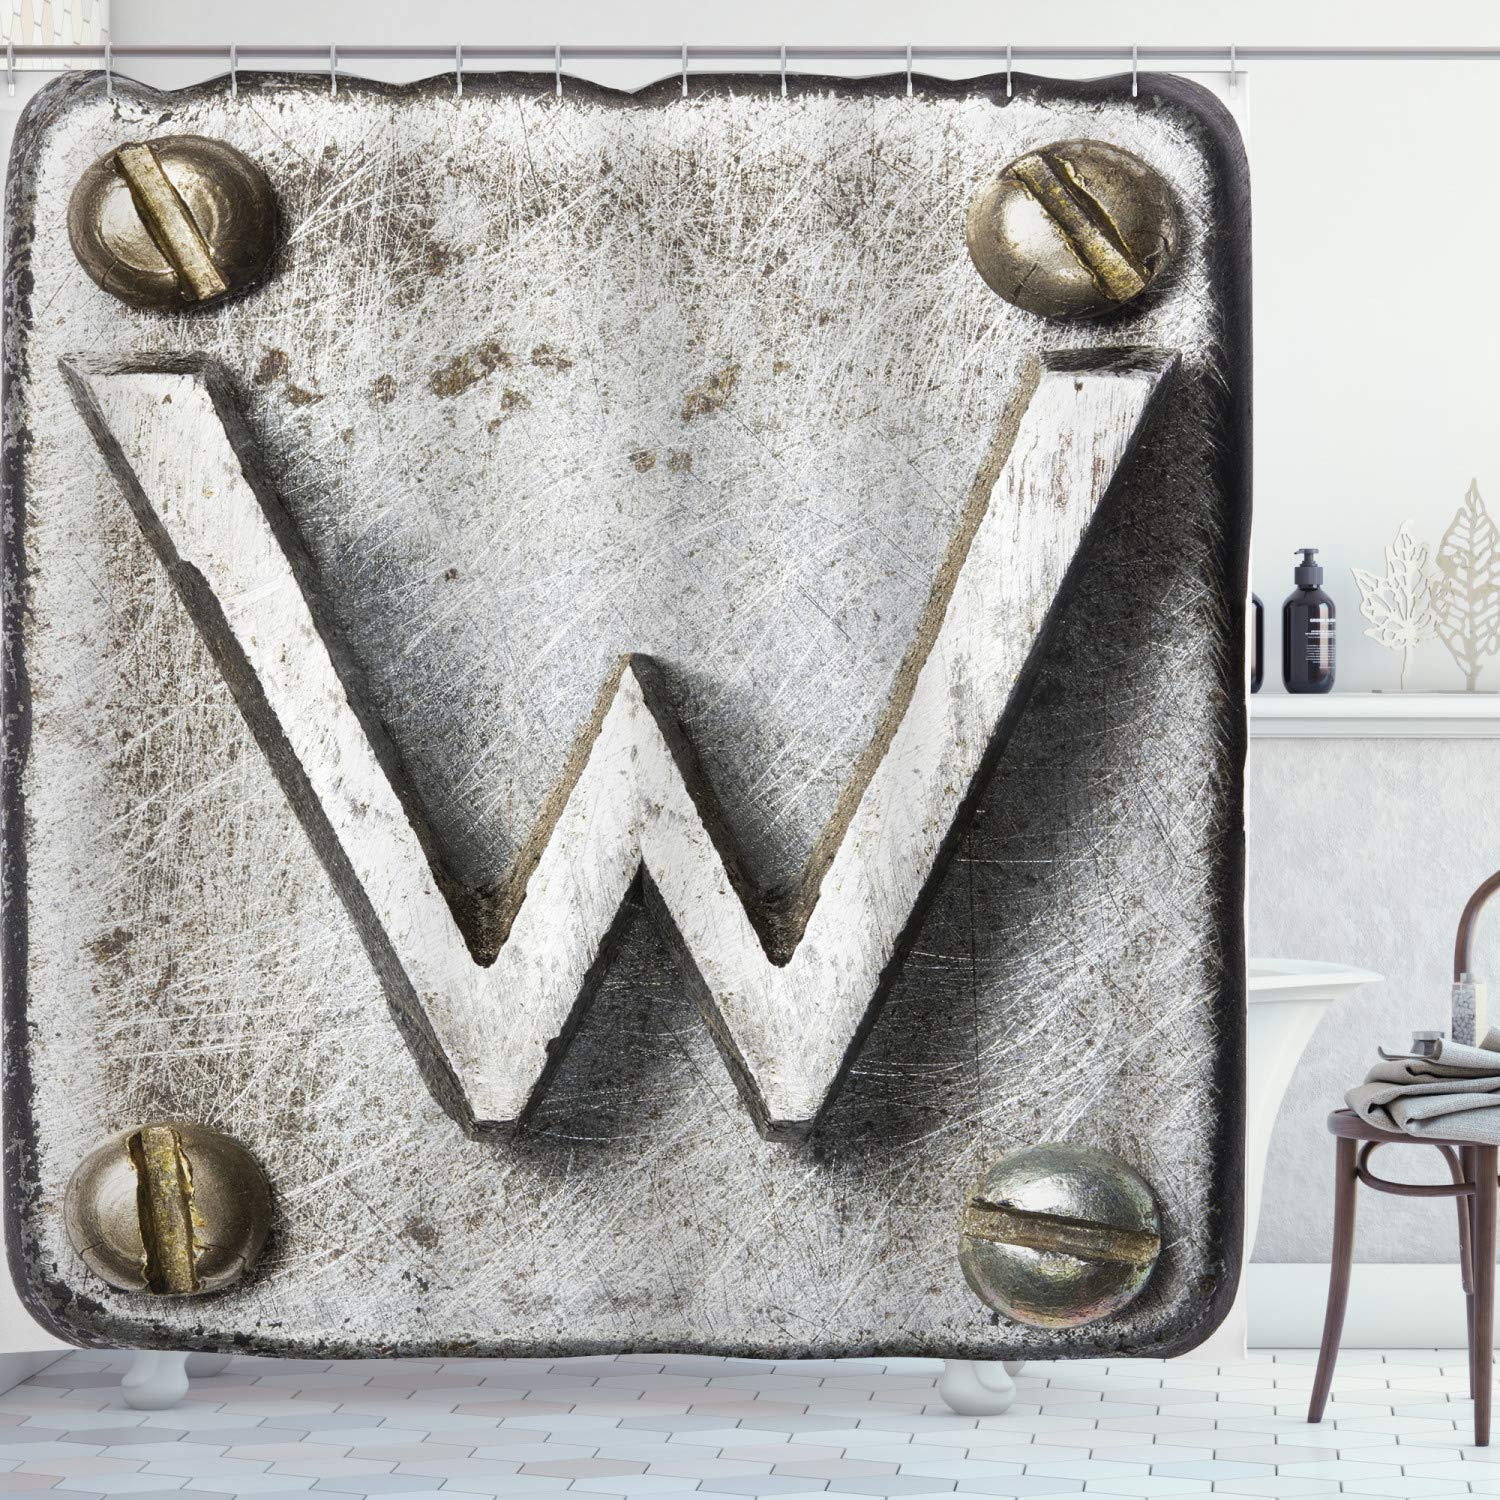 """Ambesonne Letter W Shower Curtain, Uppercase W Bolt Screws Industrial Symbolic Person Initials Image, Cloth Fabric Bathroom Decor Set with Hooks, 70"""" Long, Grey Sepia W"""